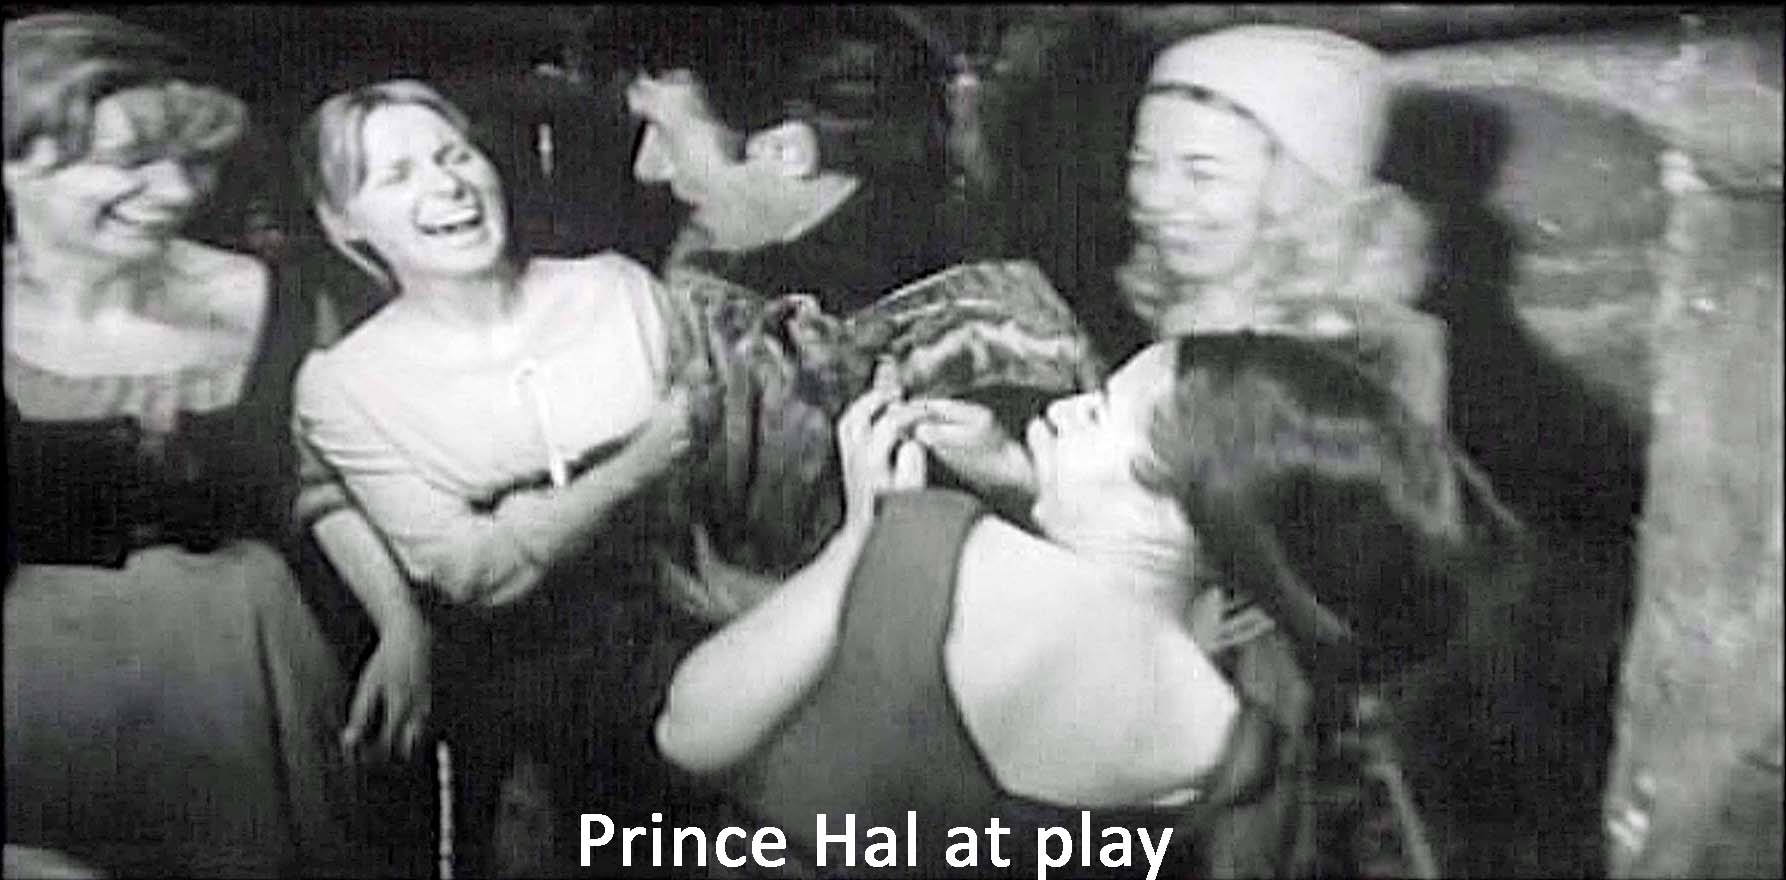 Prince Hal at play